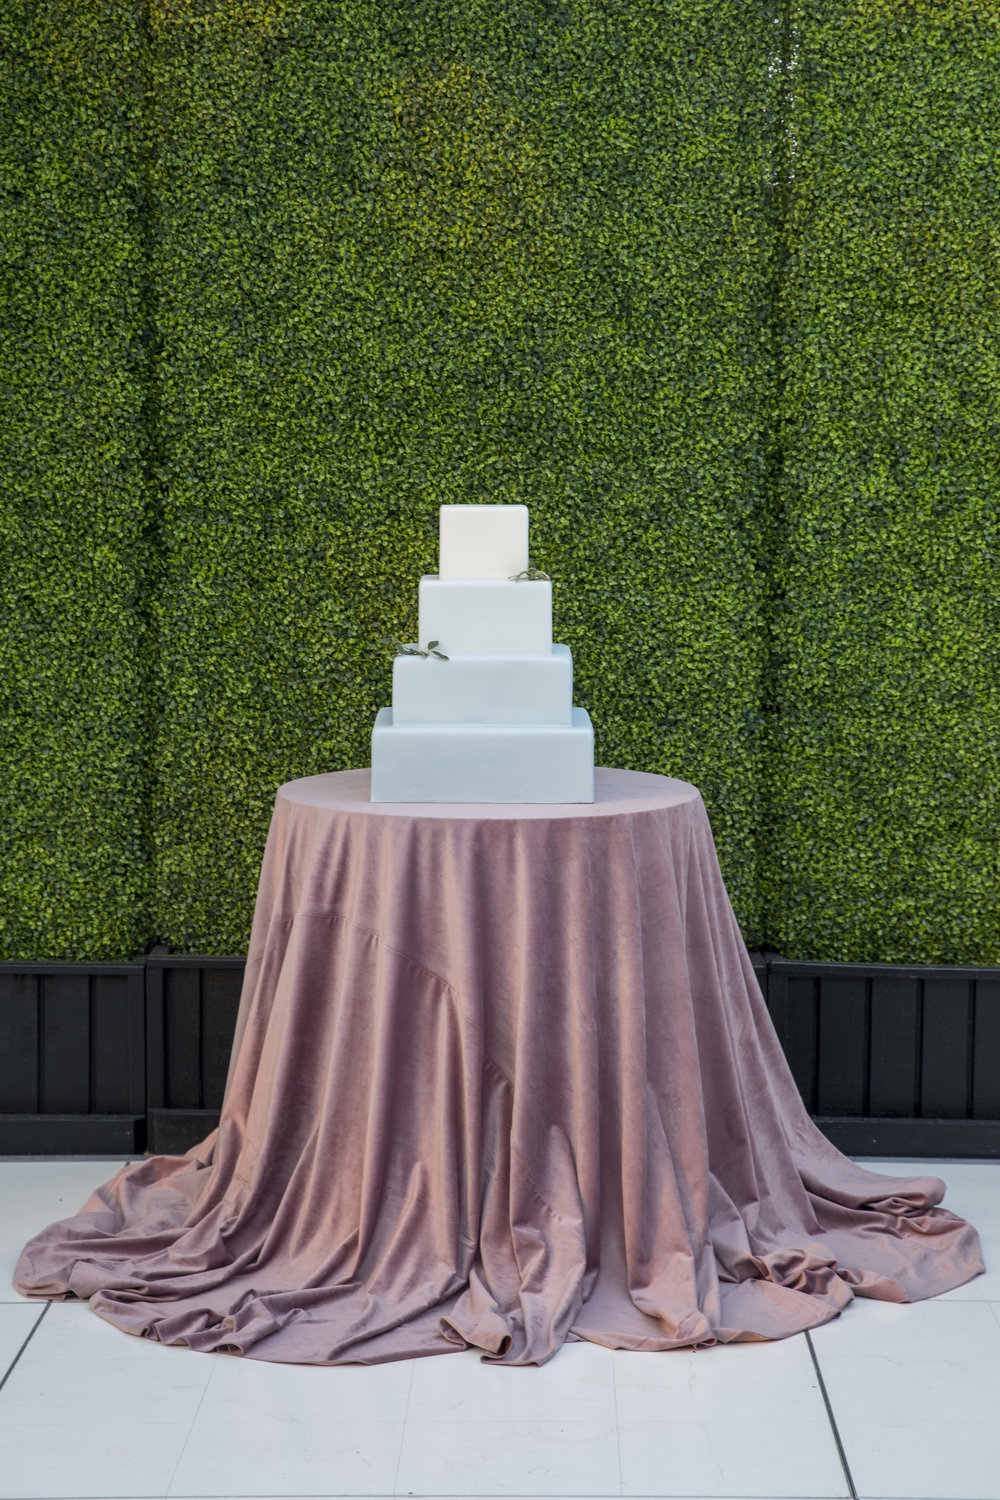 square tiered blue and white ombre wedding cake